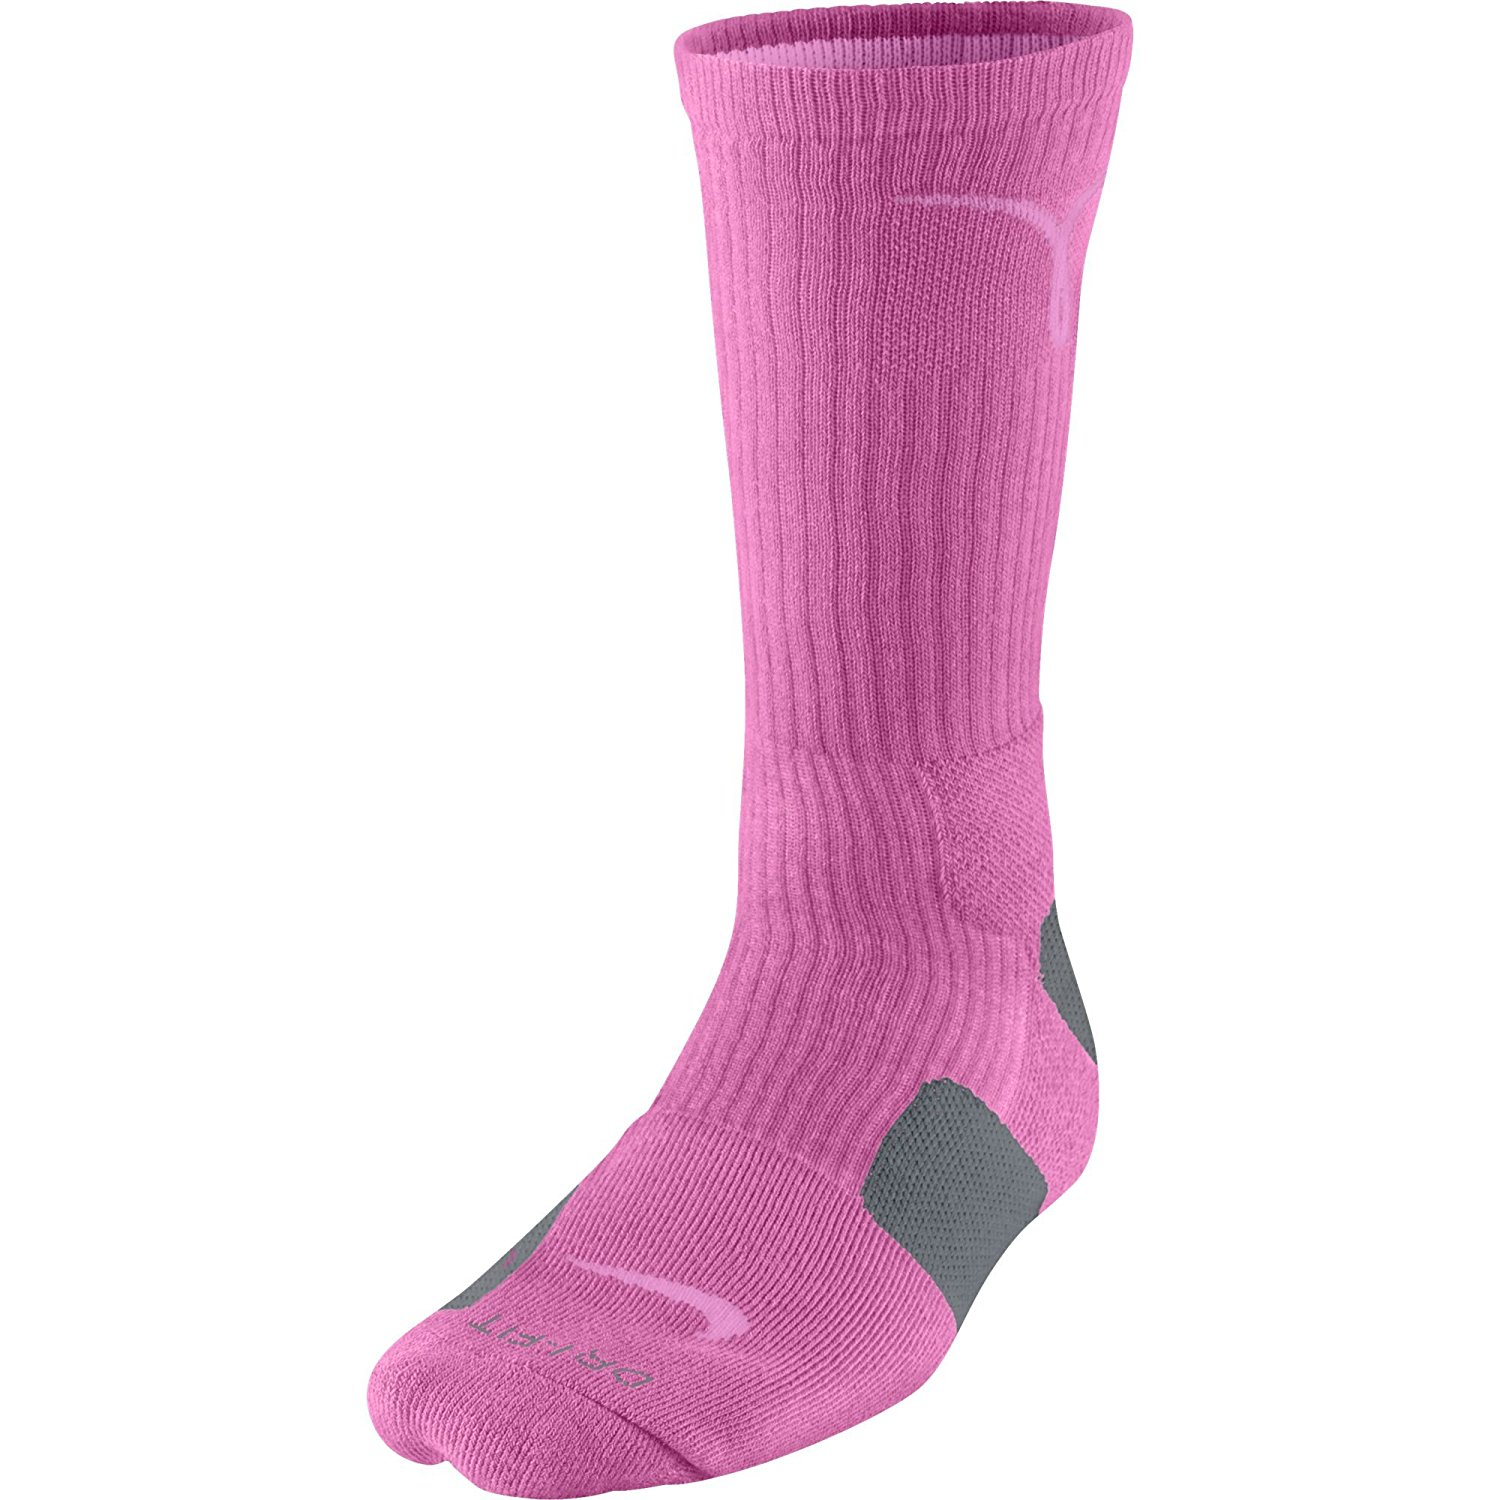 131c59eb1f2d4 Buy Nike Kay Yow Elite Crew Basketball Socks Pink/Grey Size Socks ...